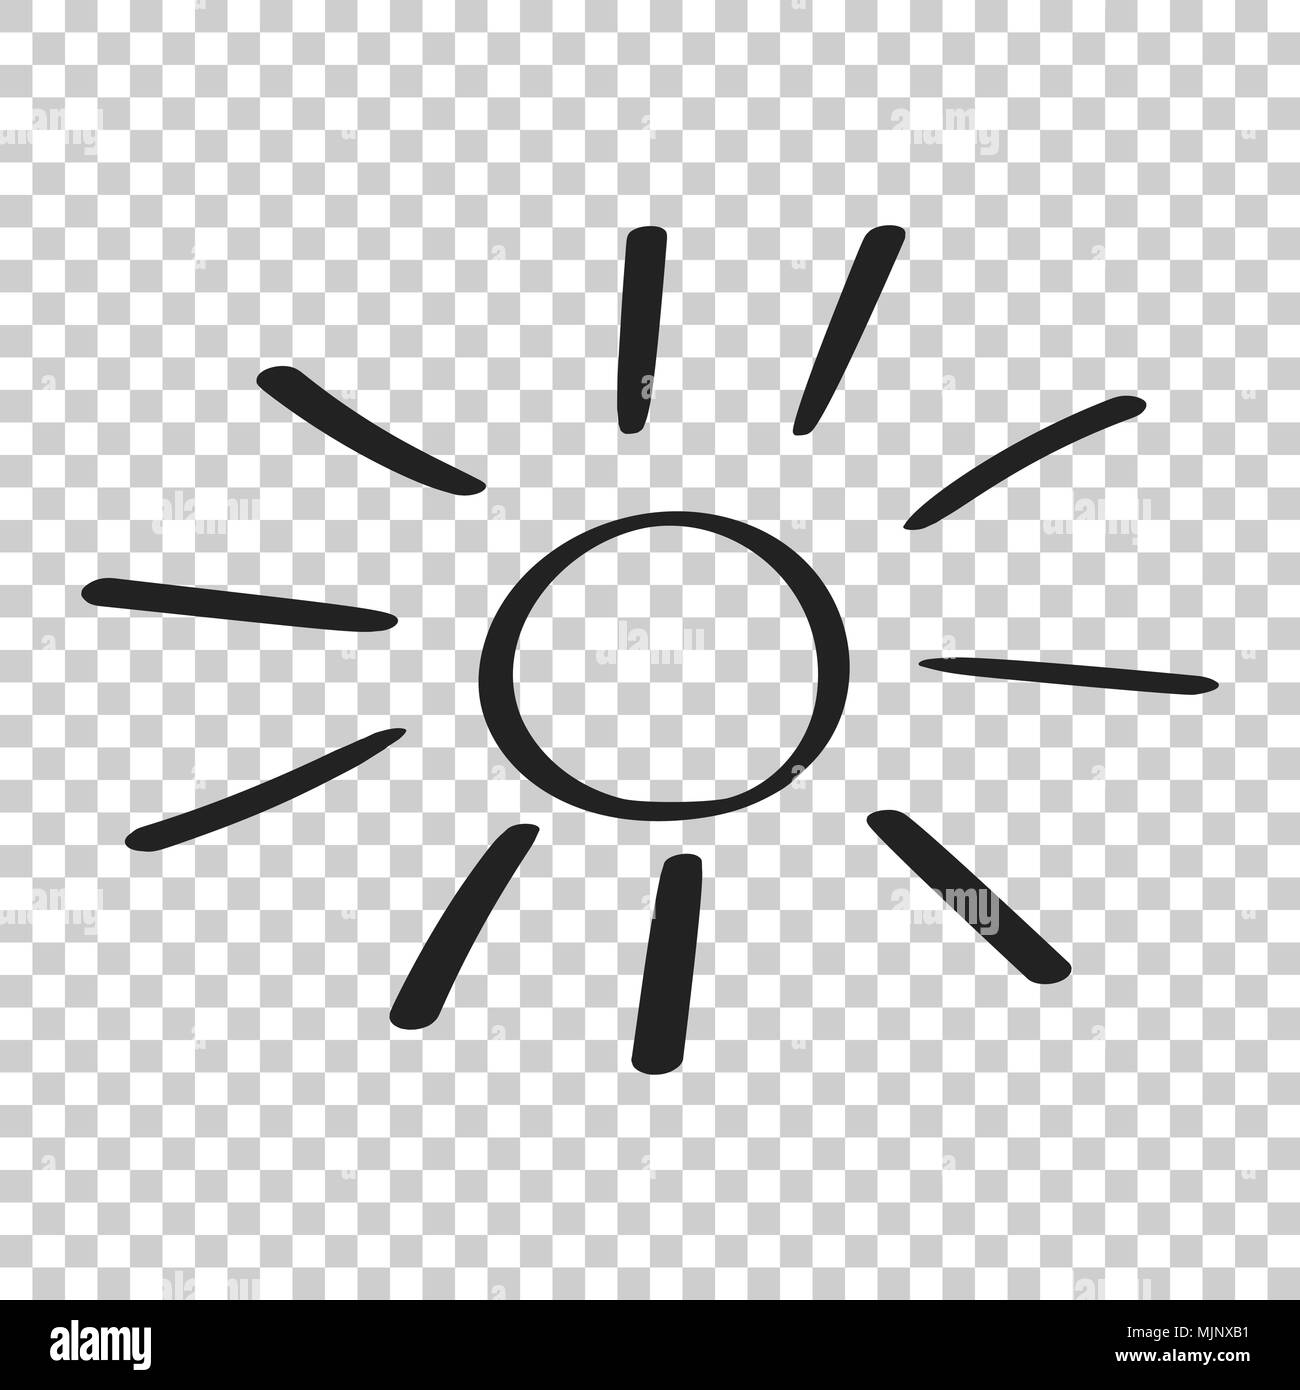 Hand Drawn Sun Vector Icon Sketch Doodle Illustration Handdrawn Sunshine Concept On Isolated Transparent Background